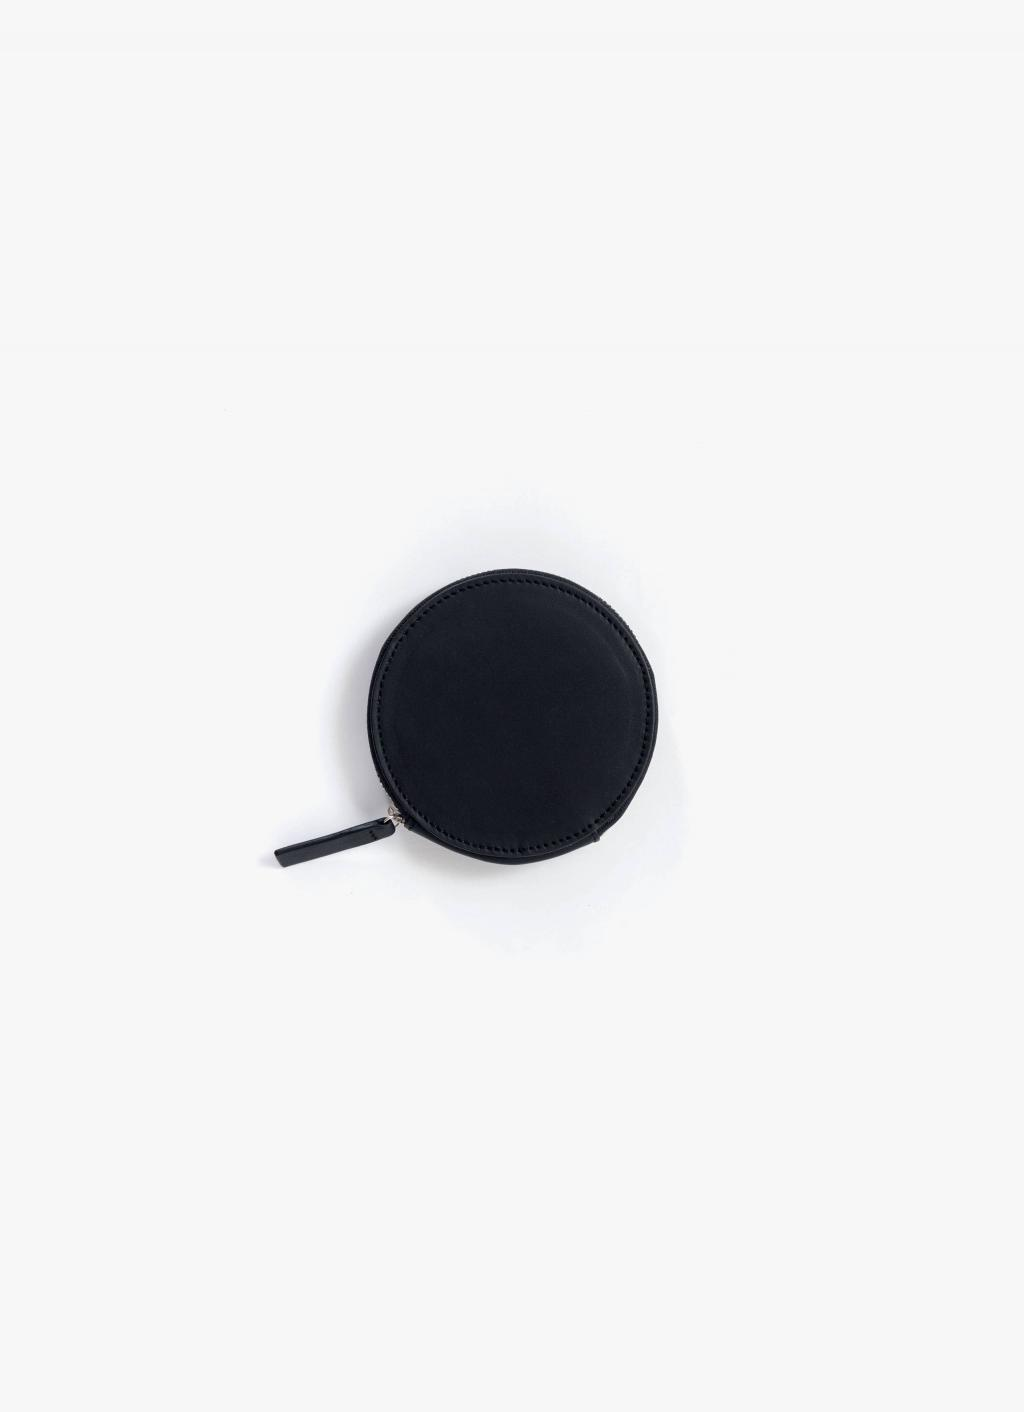 Baggu - Circle Wallet - Black - Leather